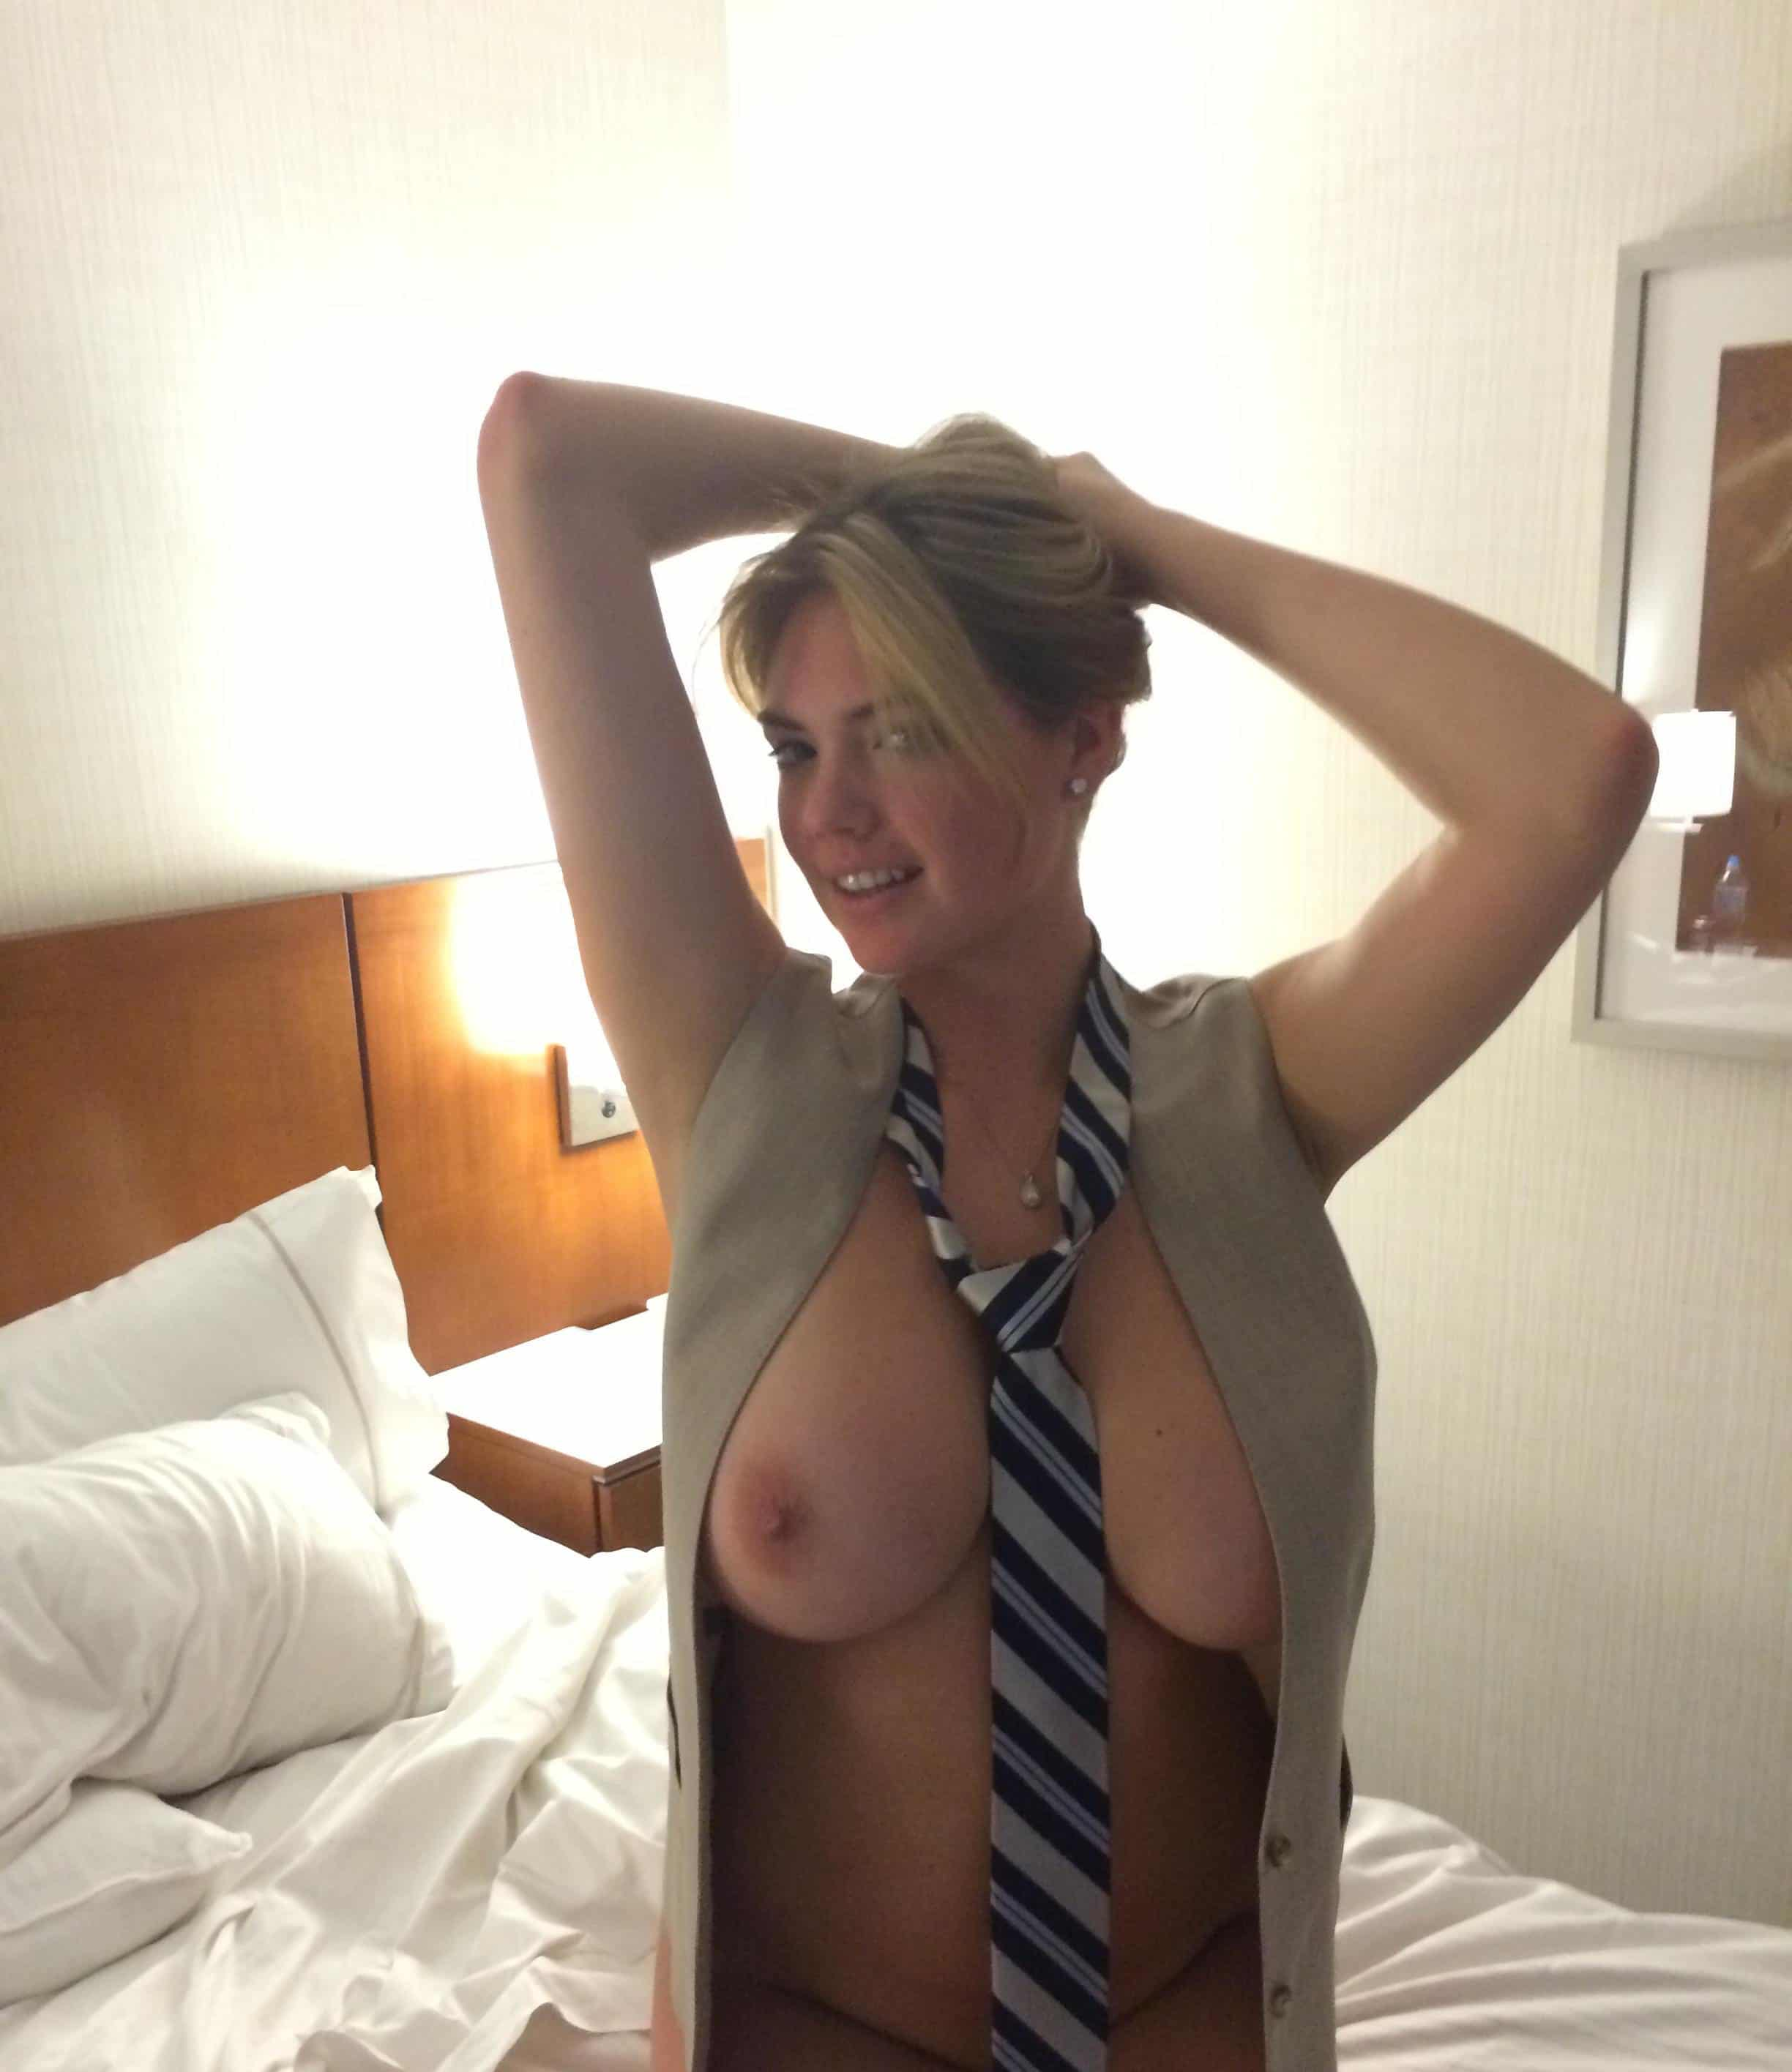 Kate Upton topless with tie around her neck fappening leak pic